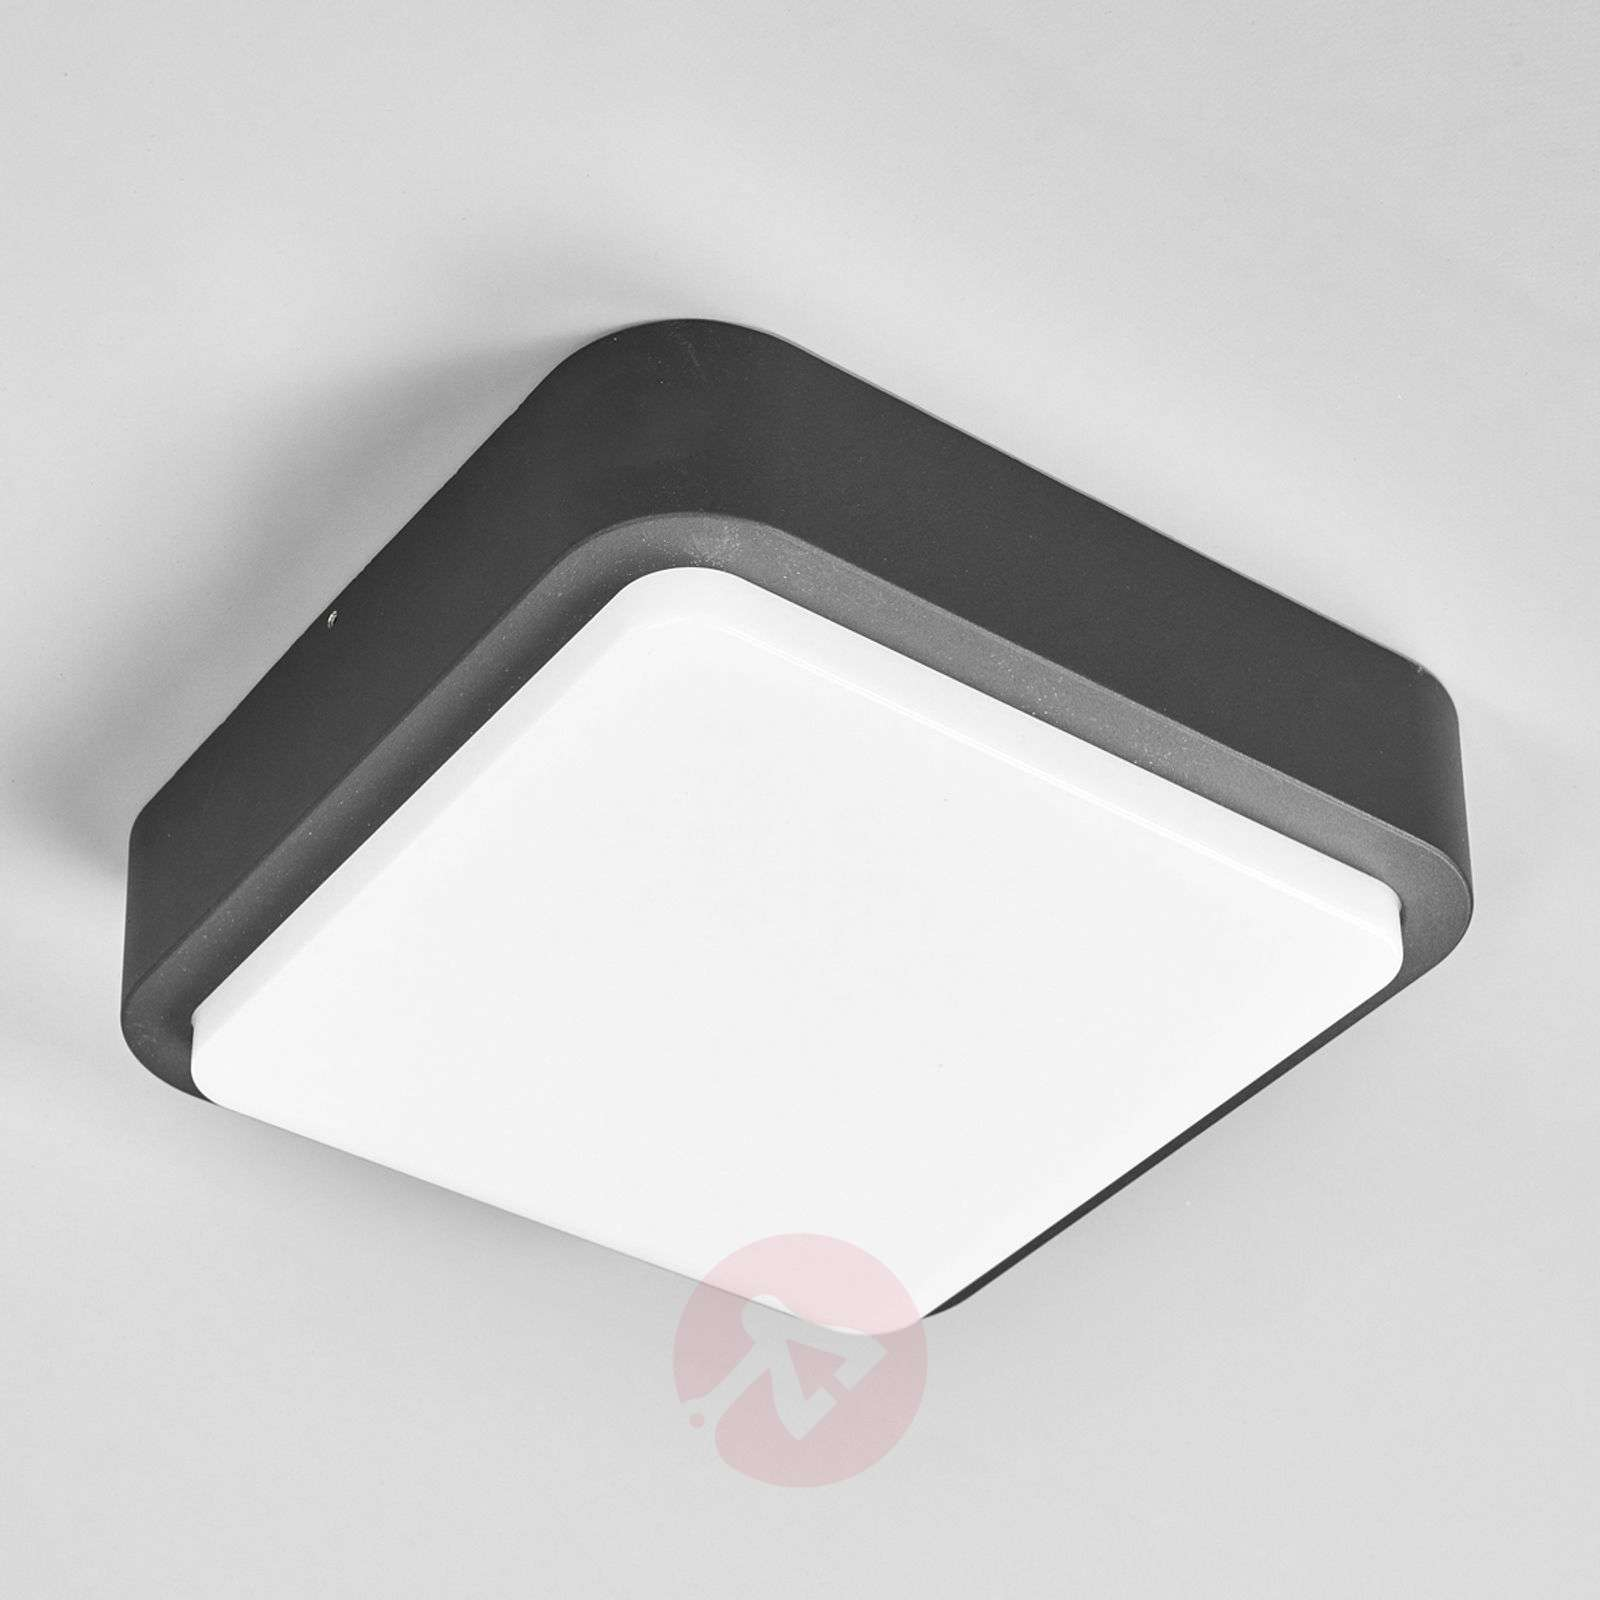 Maxine a rounded outdoor wall light with LEDs-9955003-02